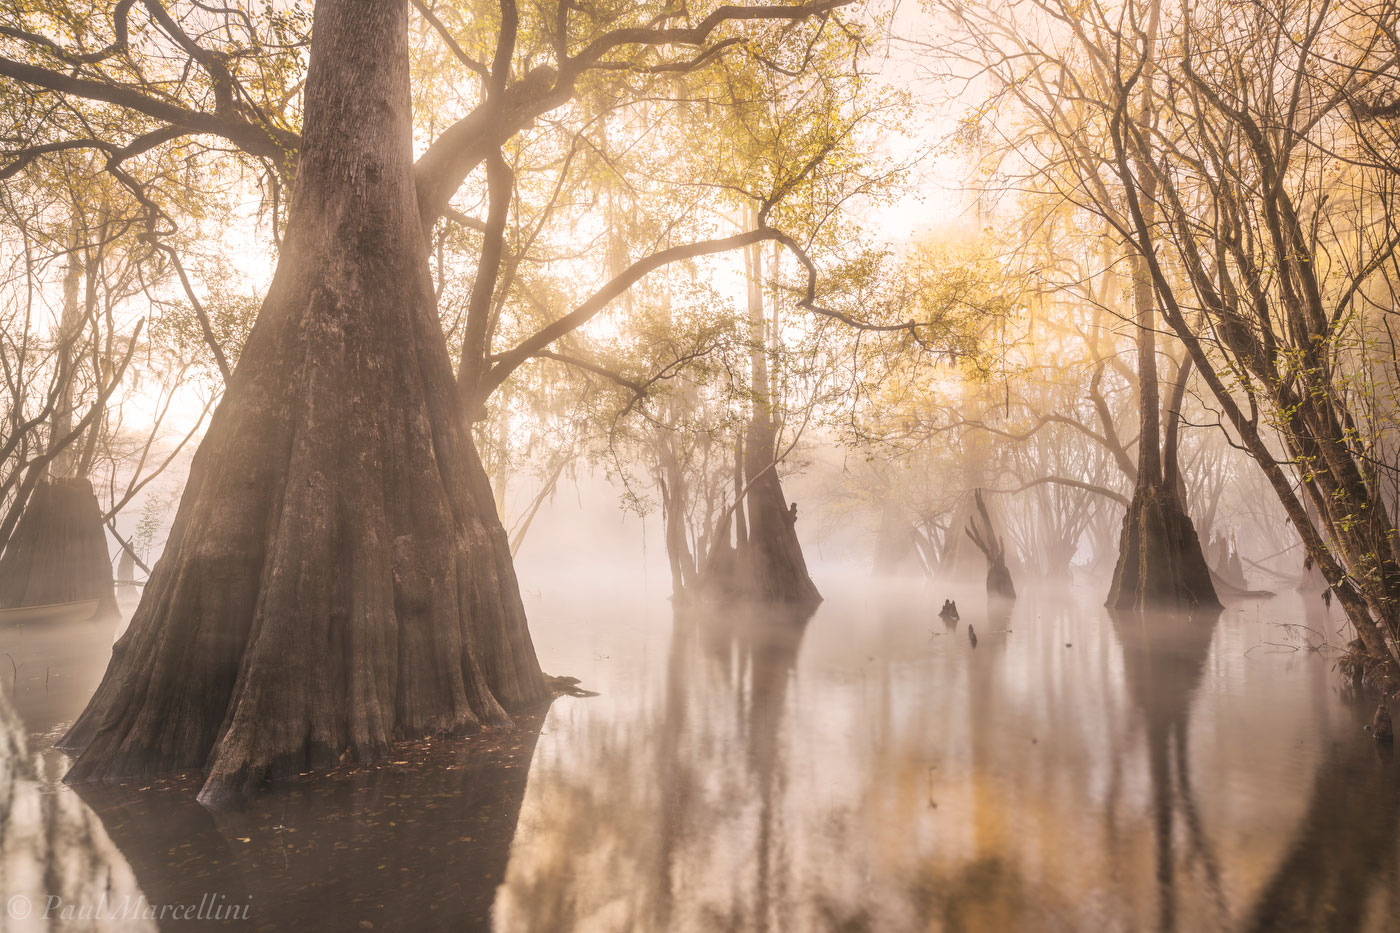 fog, suwannee valley, fall, florida, nature, photography, photo